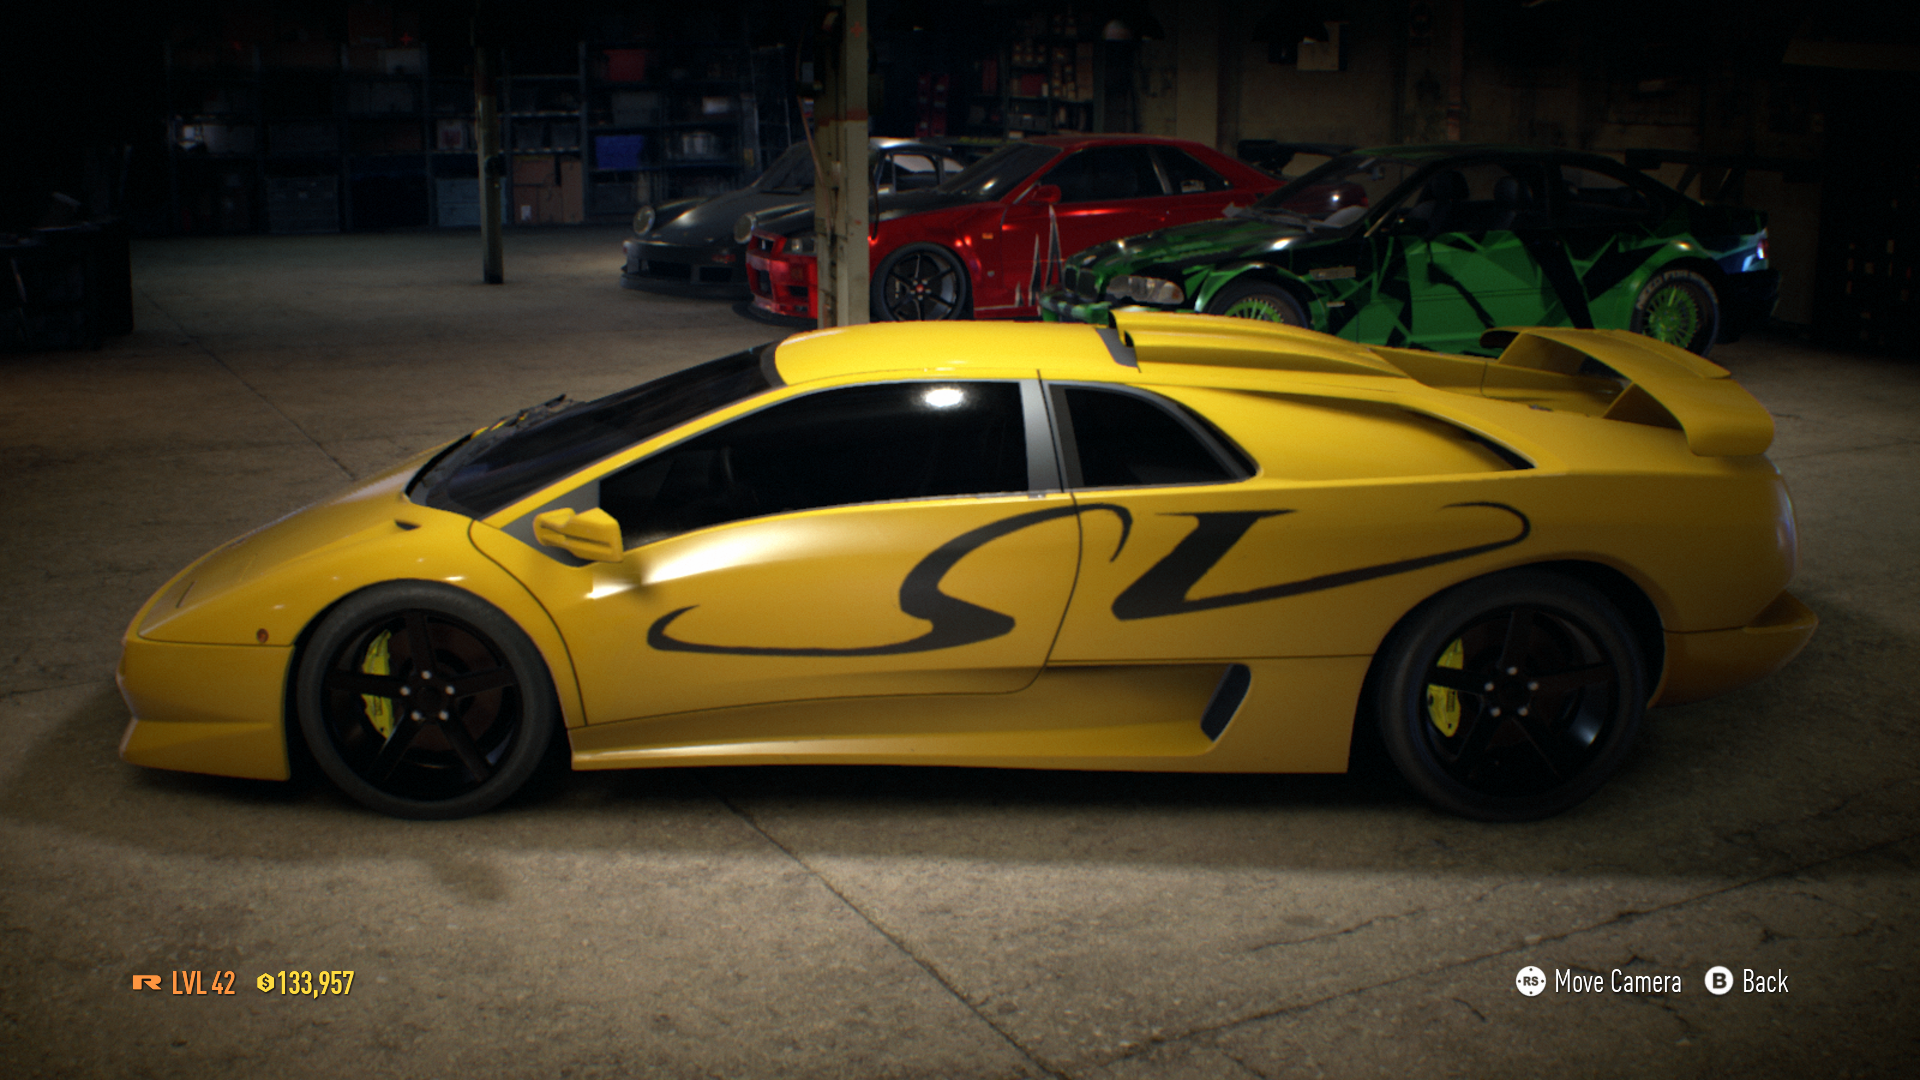 Made This Lamborghini Diablo Sv Skin On Xbox One You Guys Can Get